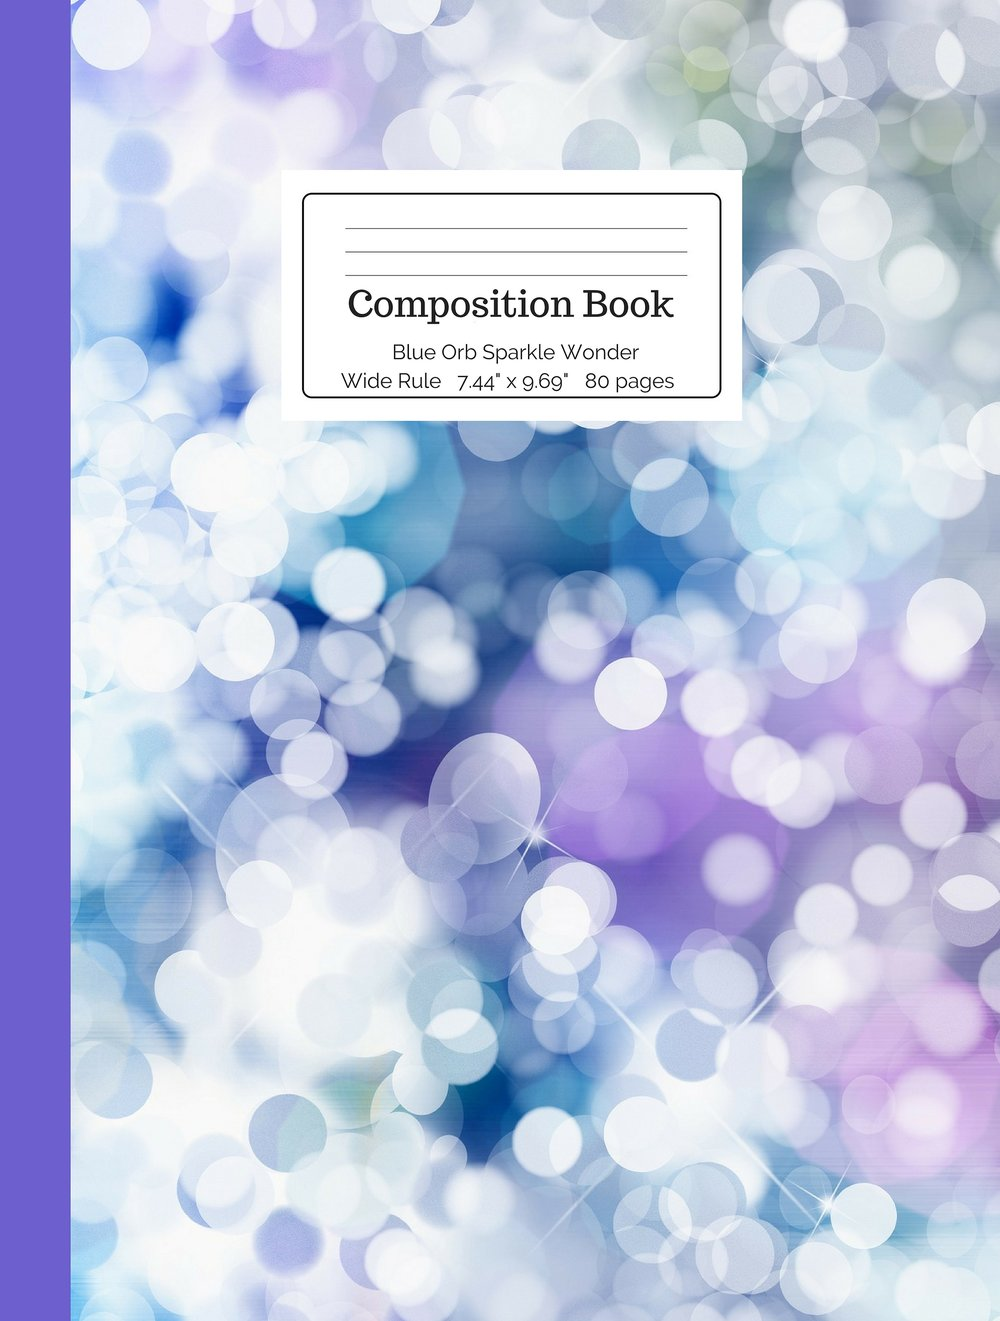 Blue Orb Sparkle Wonder Composition Book